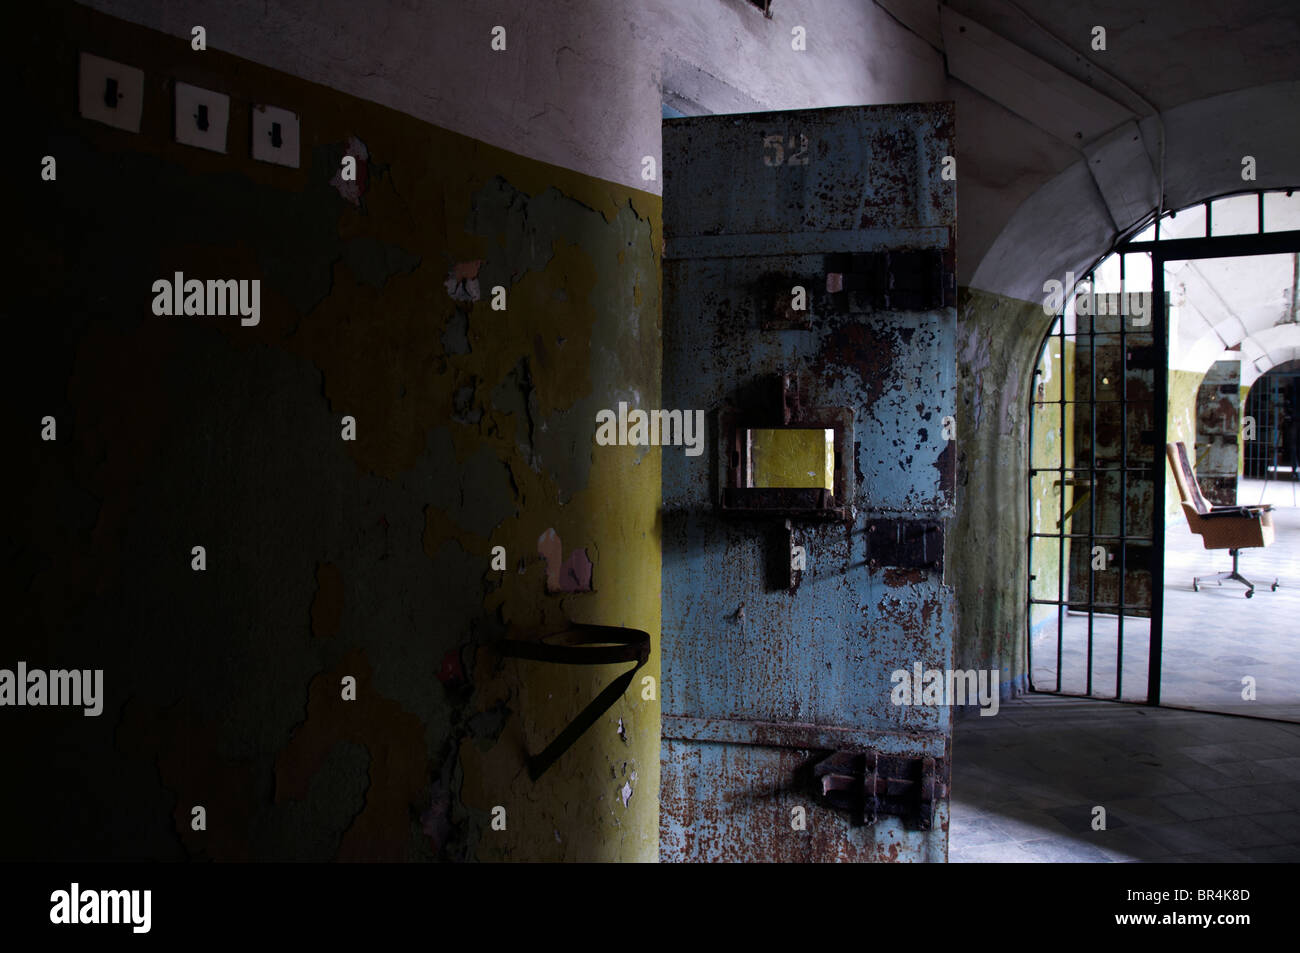 Cell doors in the old abandoned prison & Cell doors in the old abandoned prison Stock Photo: 31450397 - Alamy